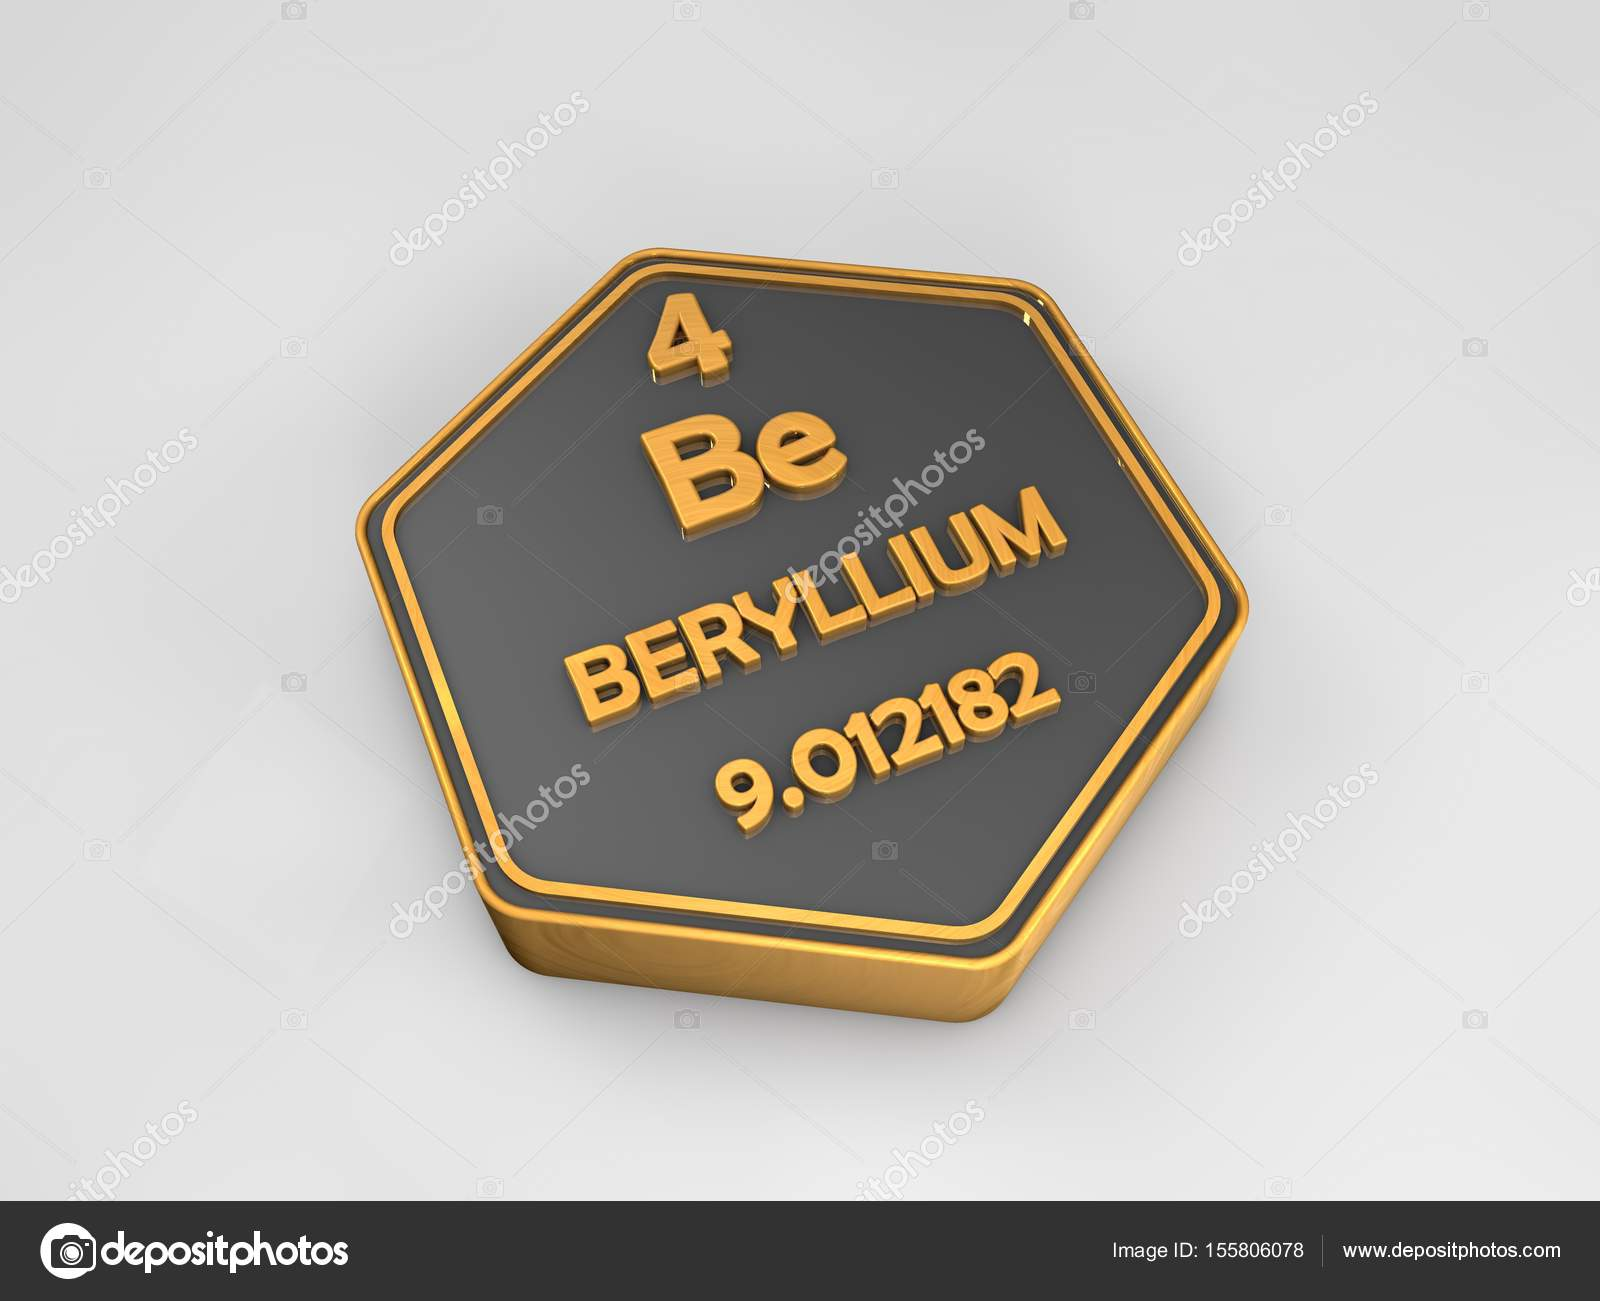 Beryllium be chemical element periodic table hexagonal shape beryllium be chemical element periodic table hexagonal shape 3d illustration photo by viking75 gamestrikefo Image collections